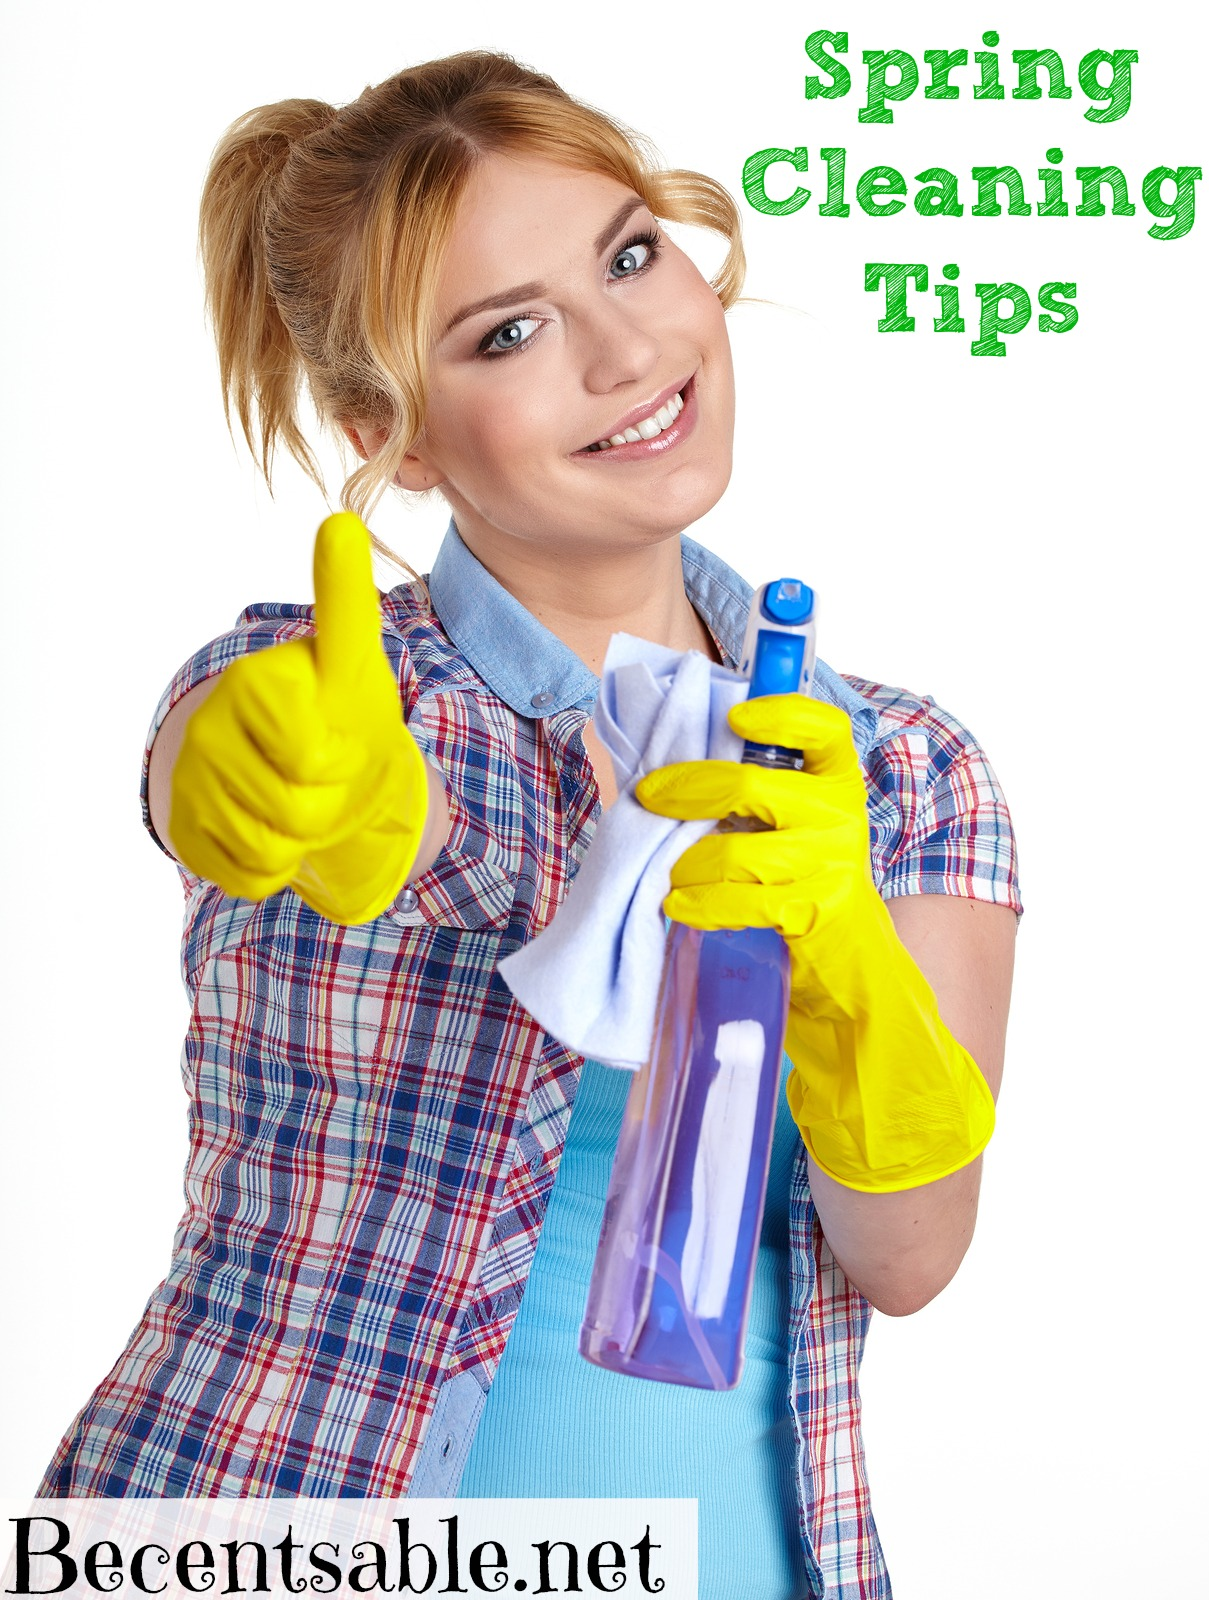 Spring Cleaning Ideas Amusing With Spring Cleaning Tips Image